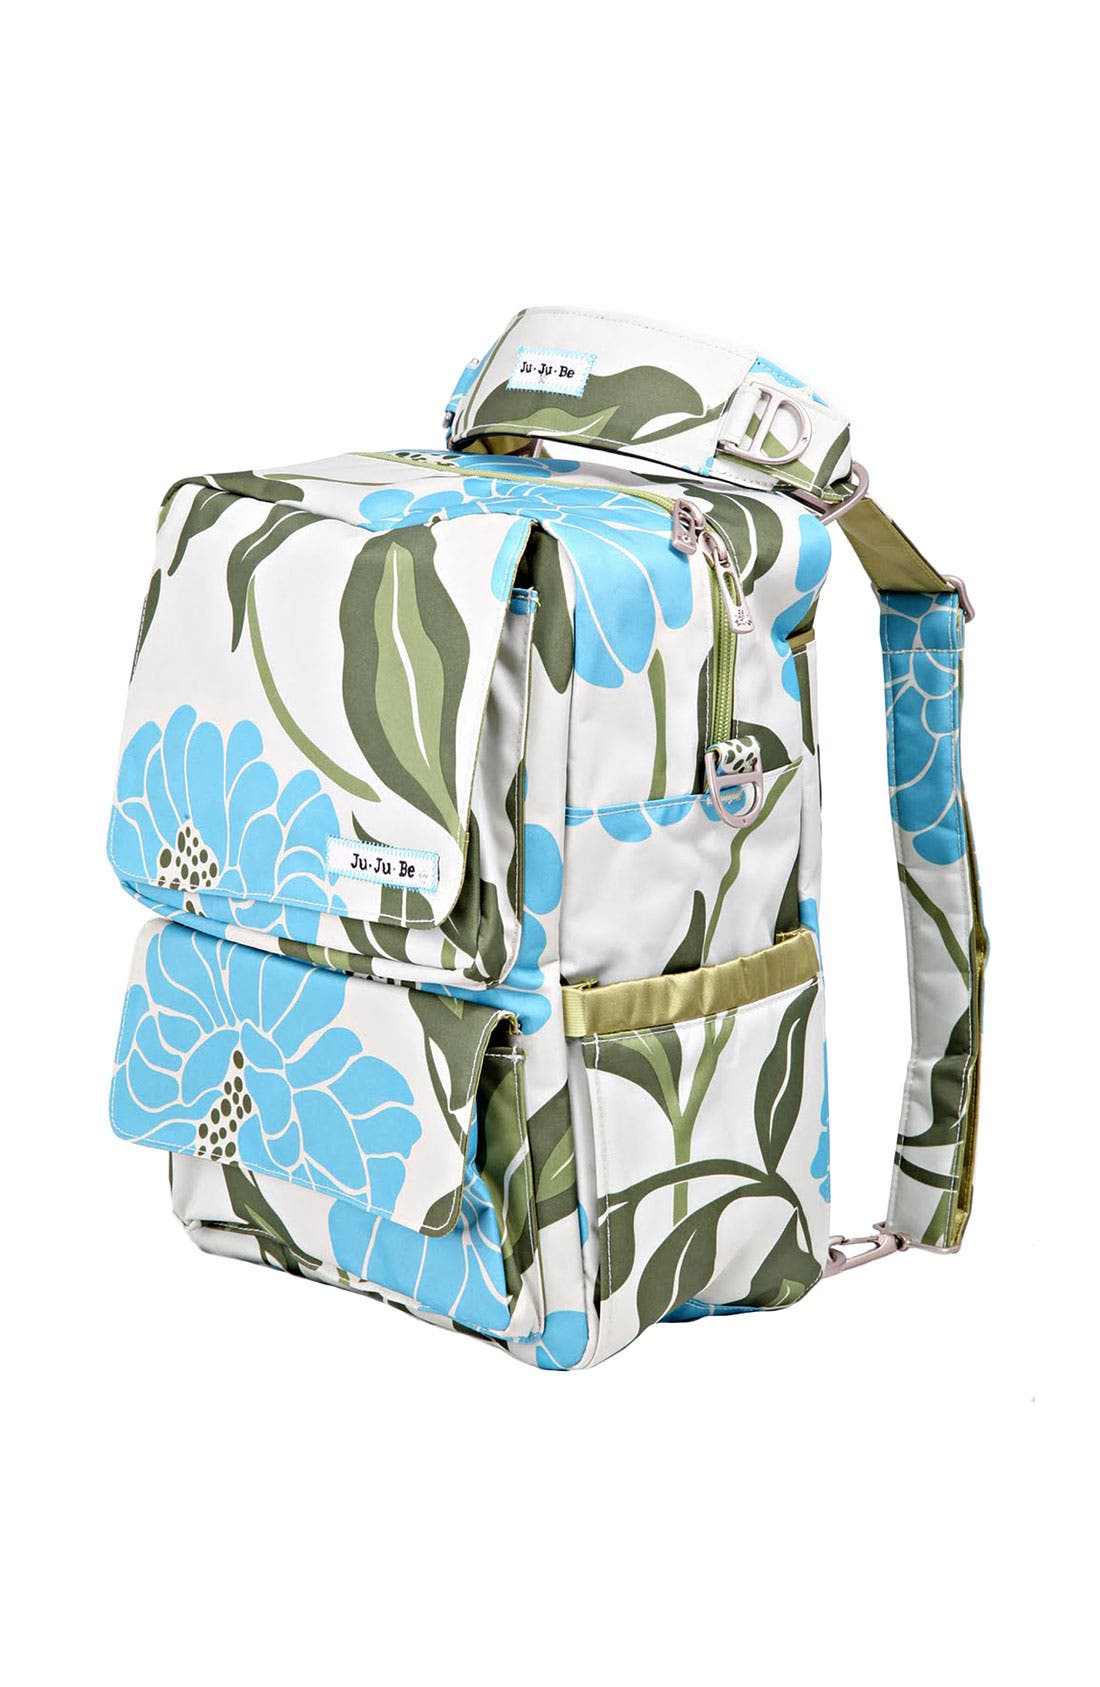 Alternate Image 1 Selected - Ju-Ju-Be 'Packabe' Convertible Diaper Bag